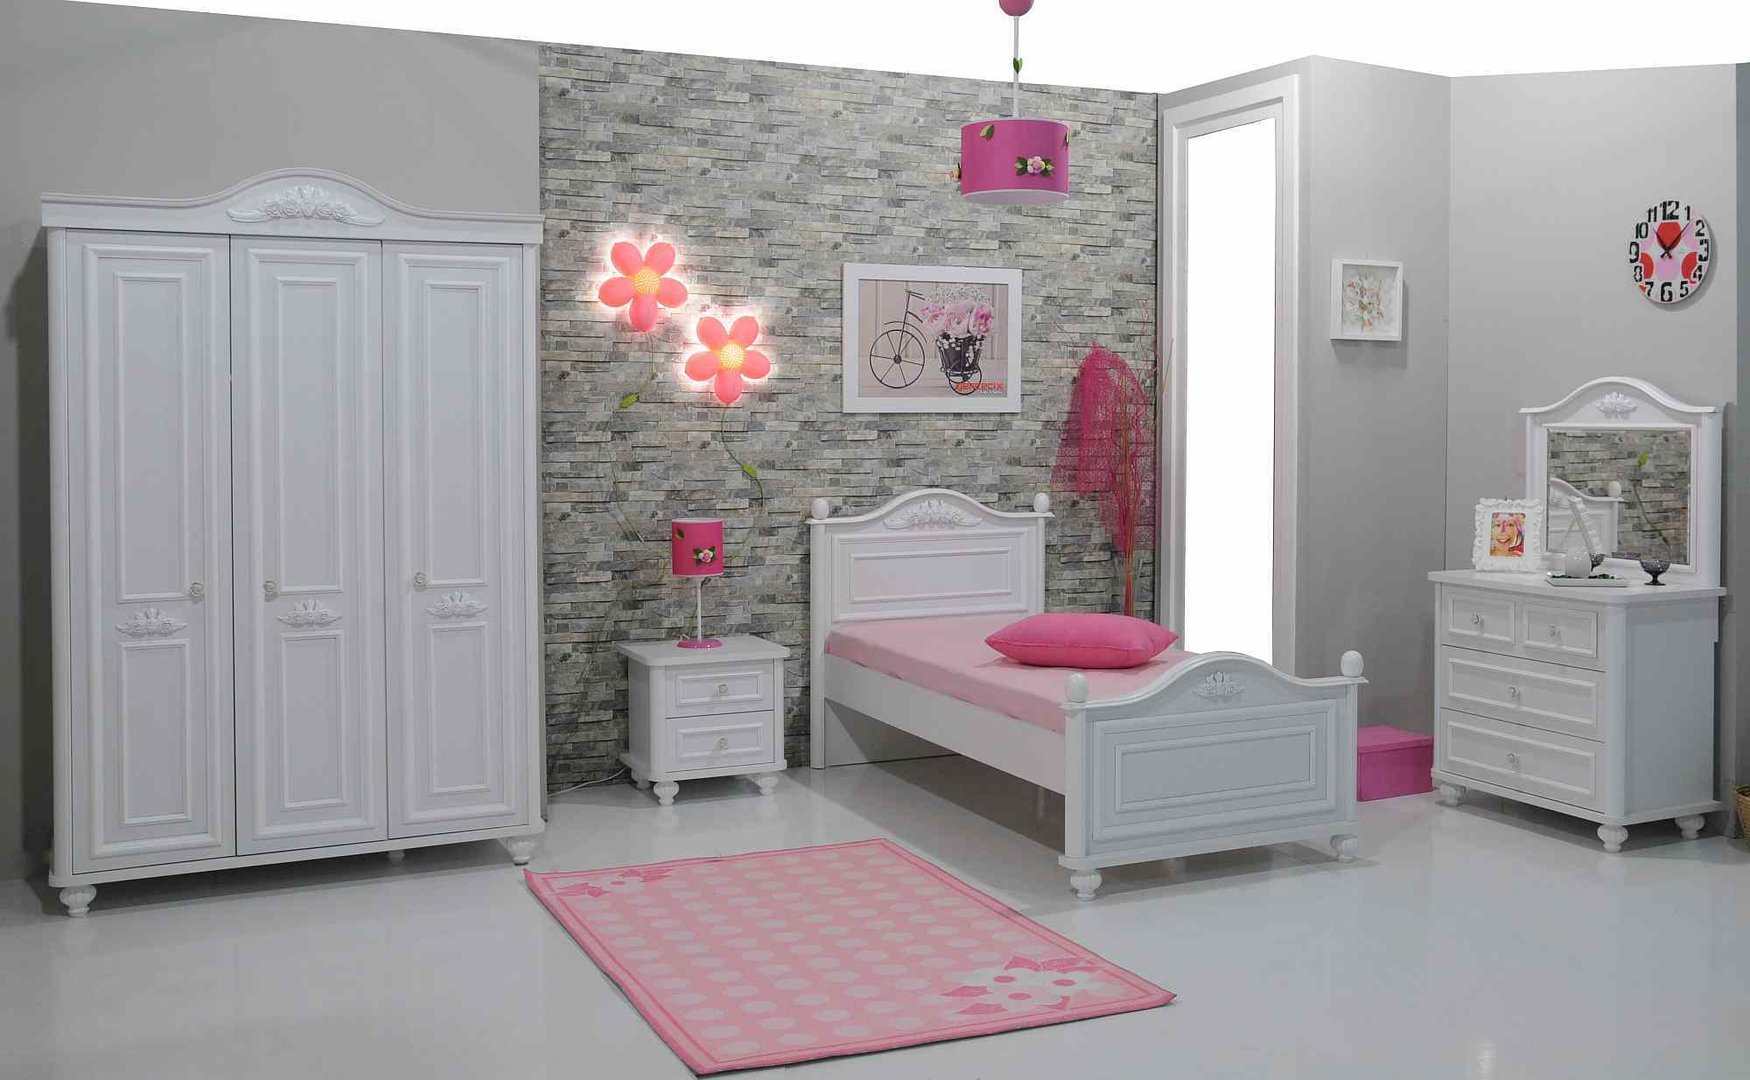 kinderzimmer bella by mm haribo 3 teilig precogs. Black Bedroom Furniture Sets. Home Design Ideas